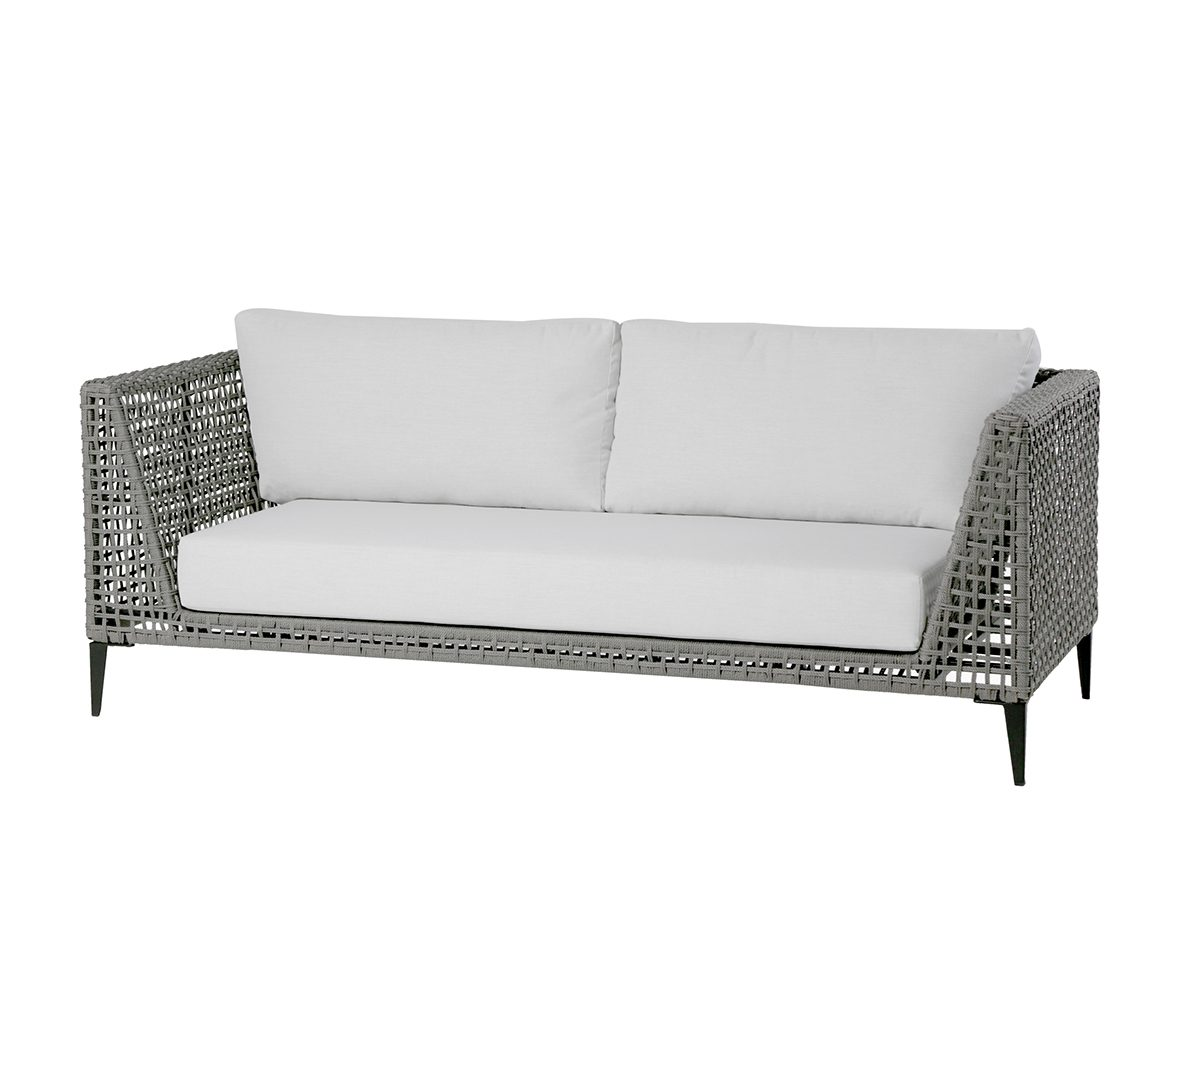 FN57203GRY_C Genval 2.5 Seater Sofa